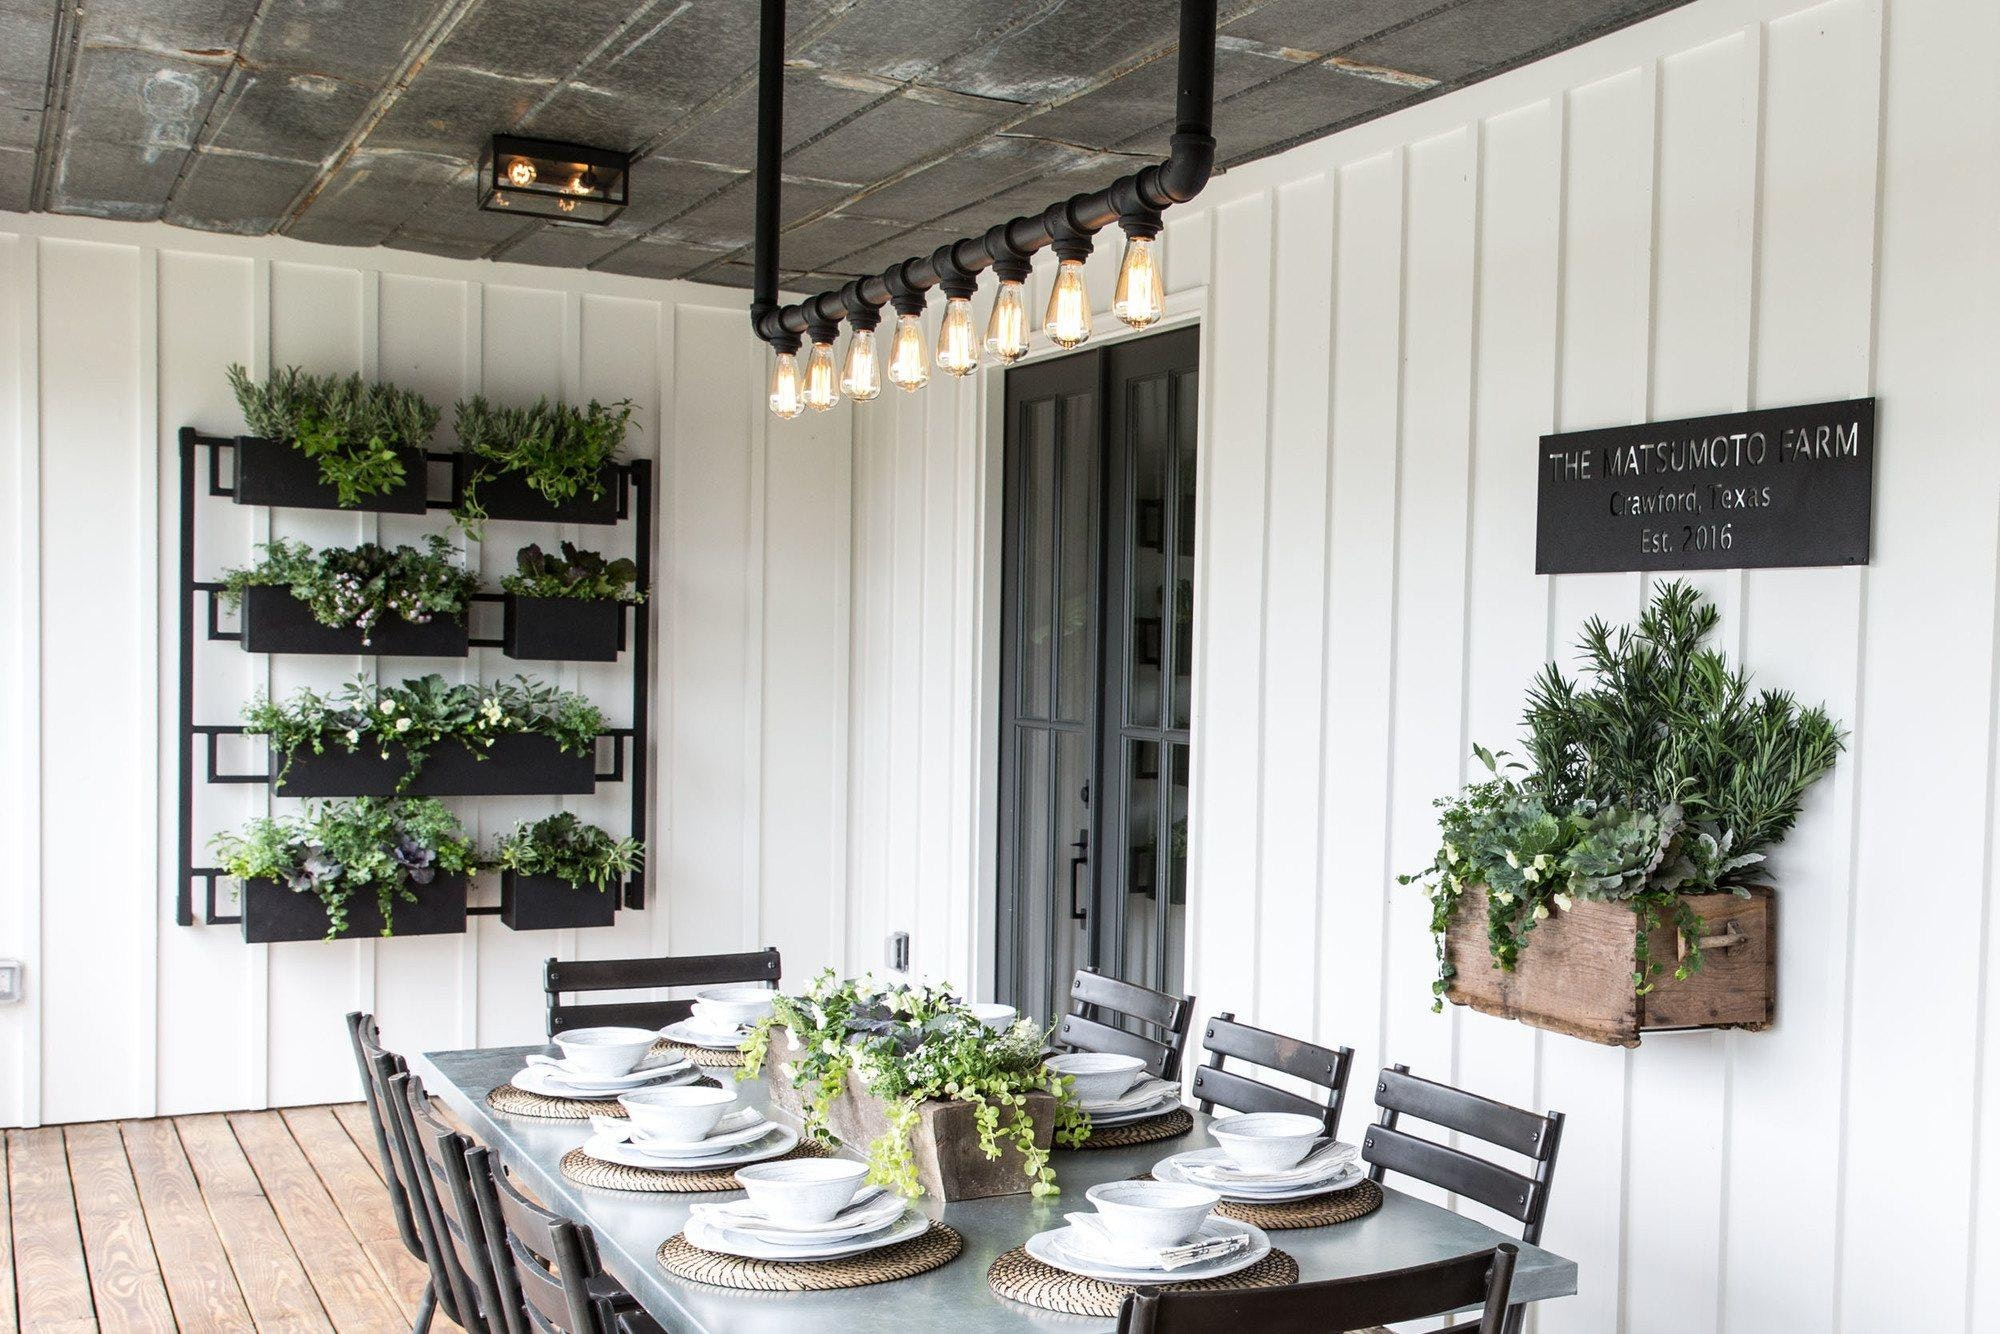 How To Make Your Home Feel Like Chip And Joanna Gaines Inspired Home 12